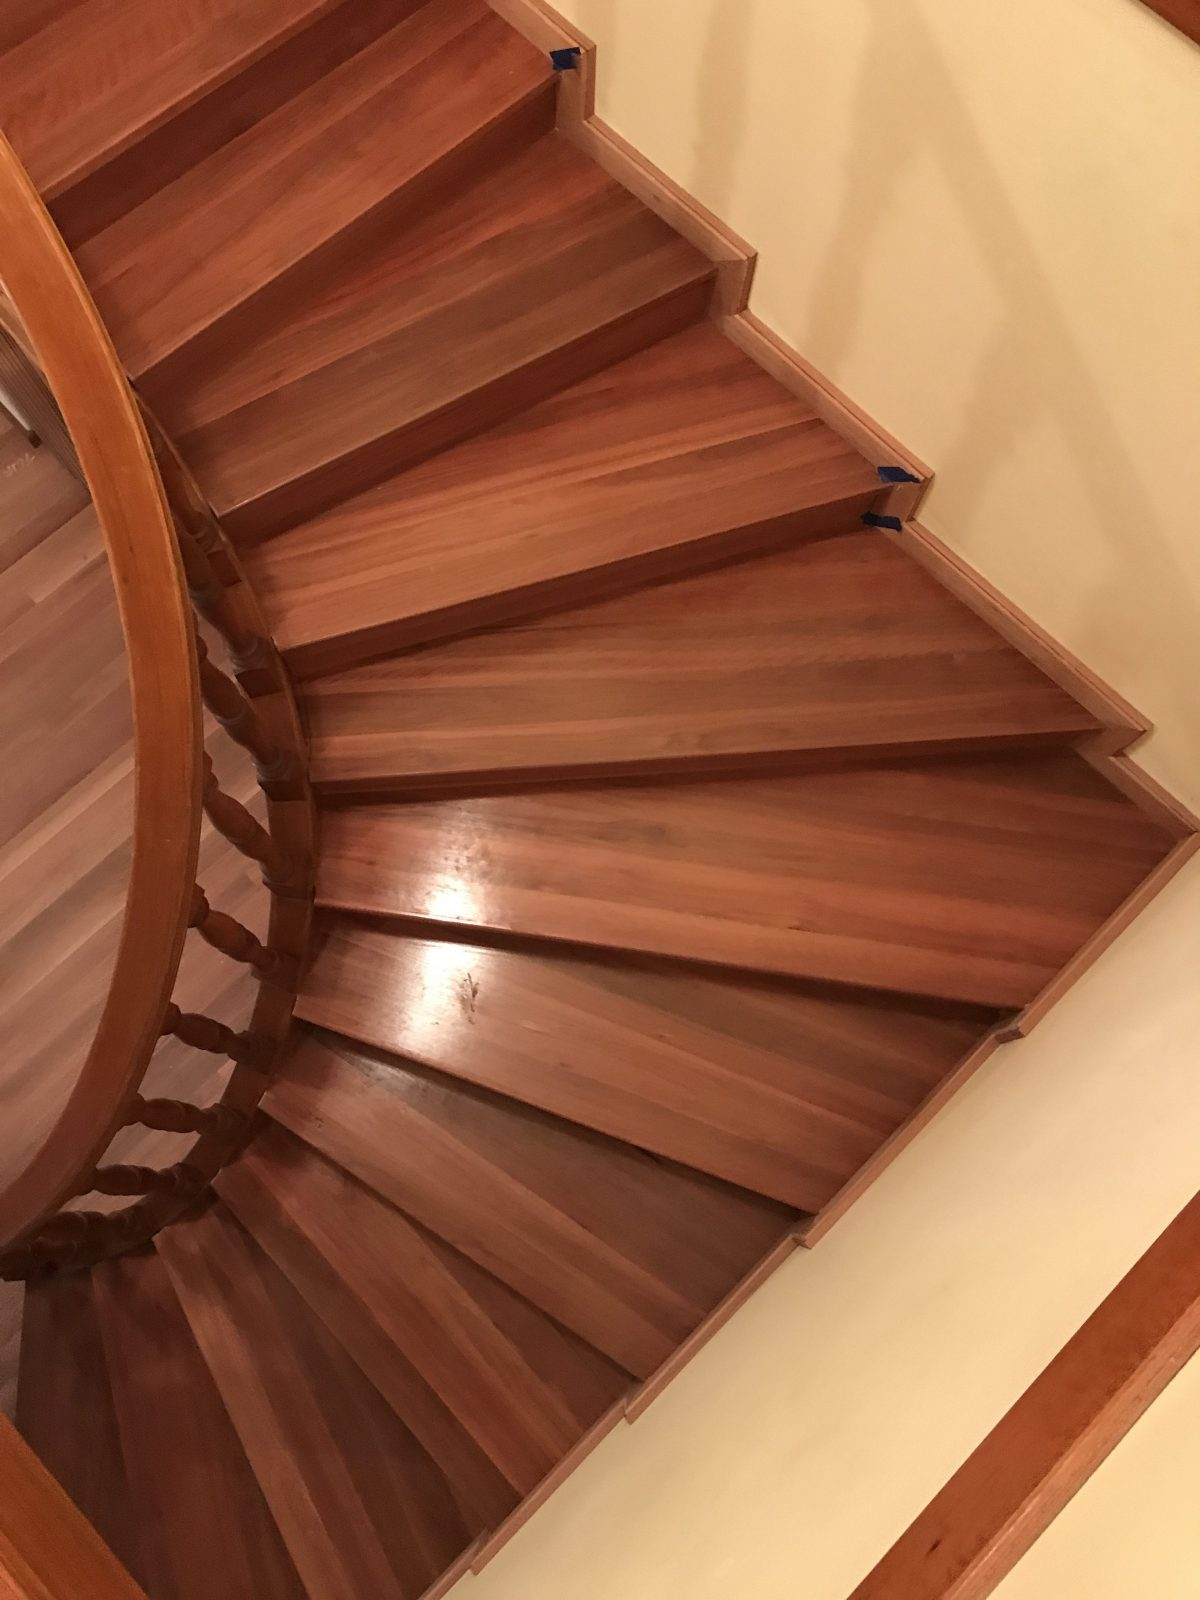 new timber flooring and Staircase makeover supplied and installed by Timber Floors Pty Ltd